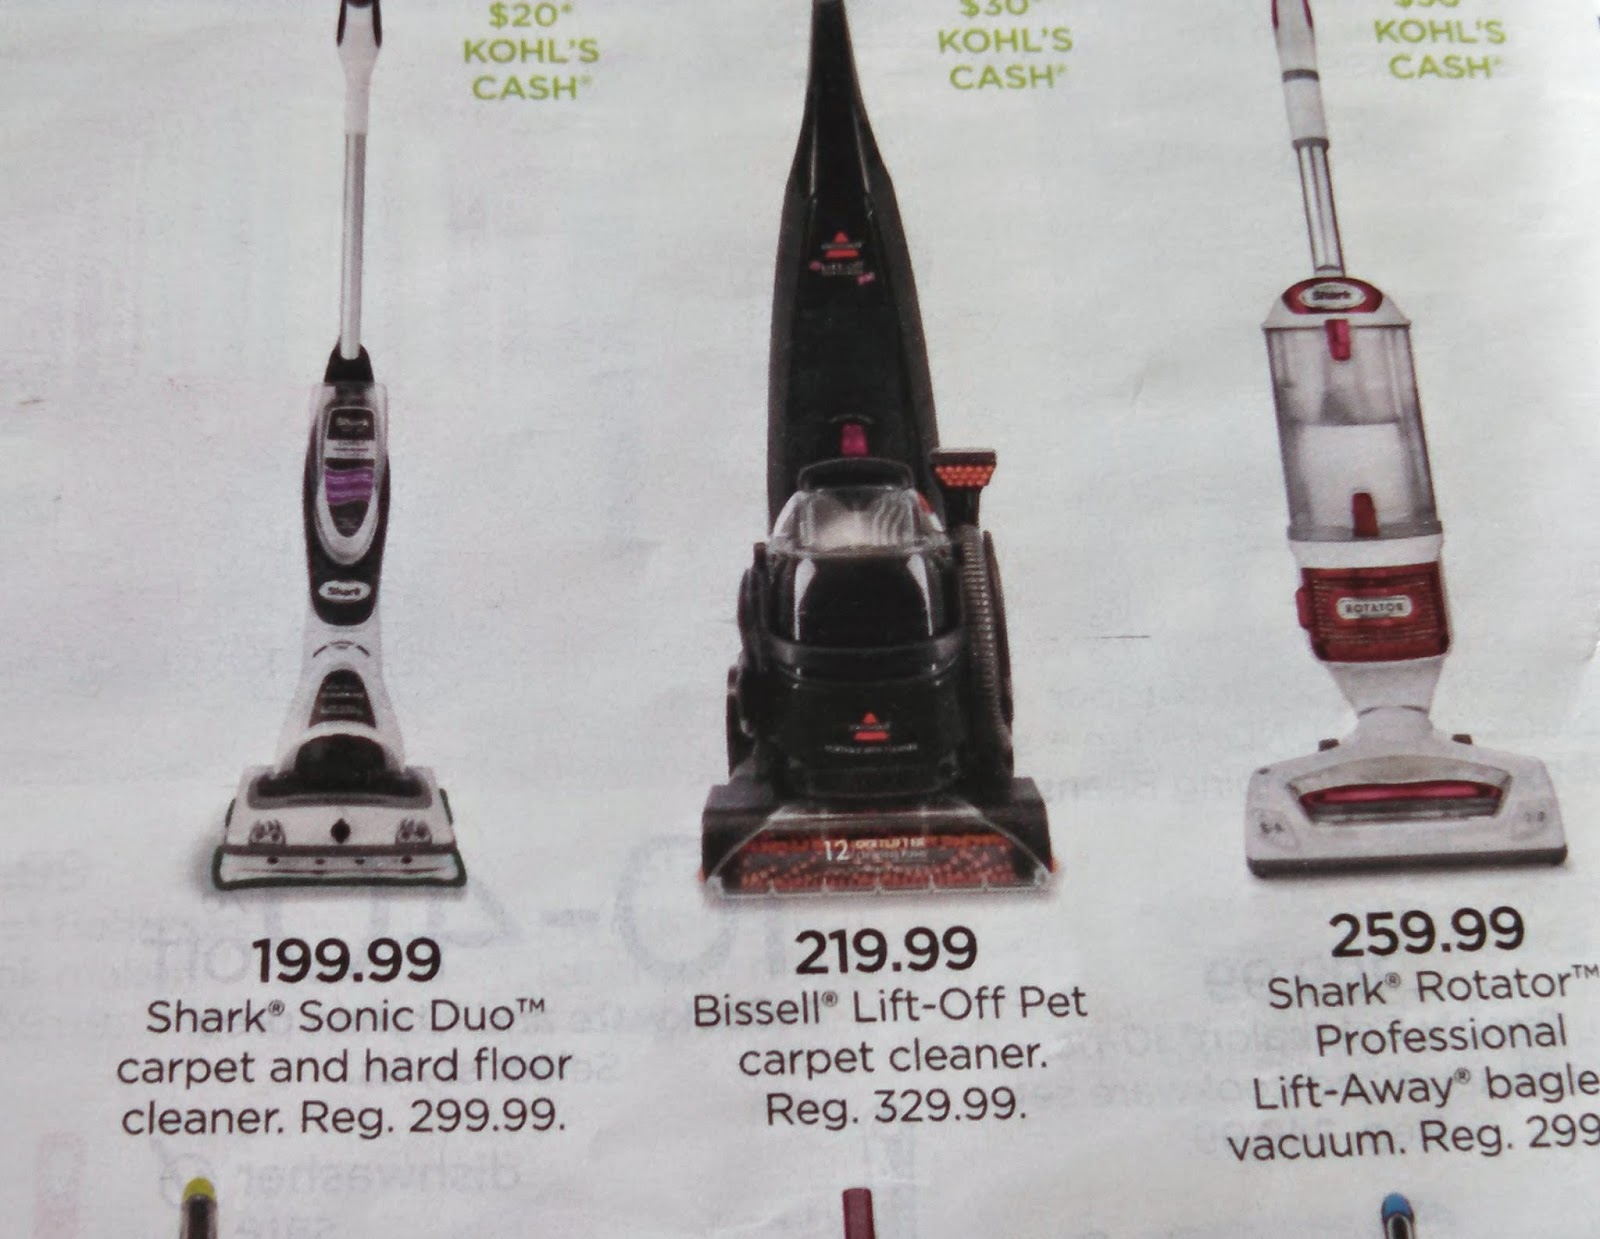 Good Thing I Checked My Ads- Kohl's had the best price on a Bissel Lift-Off